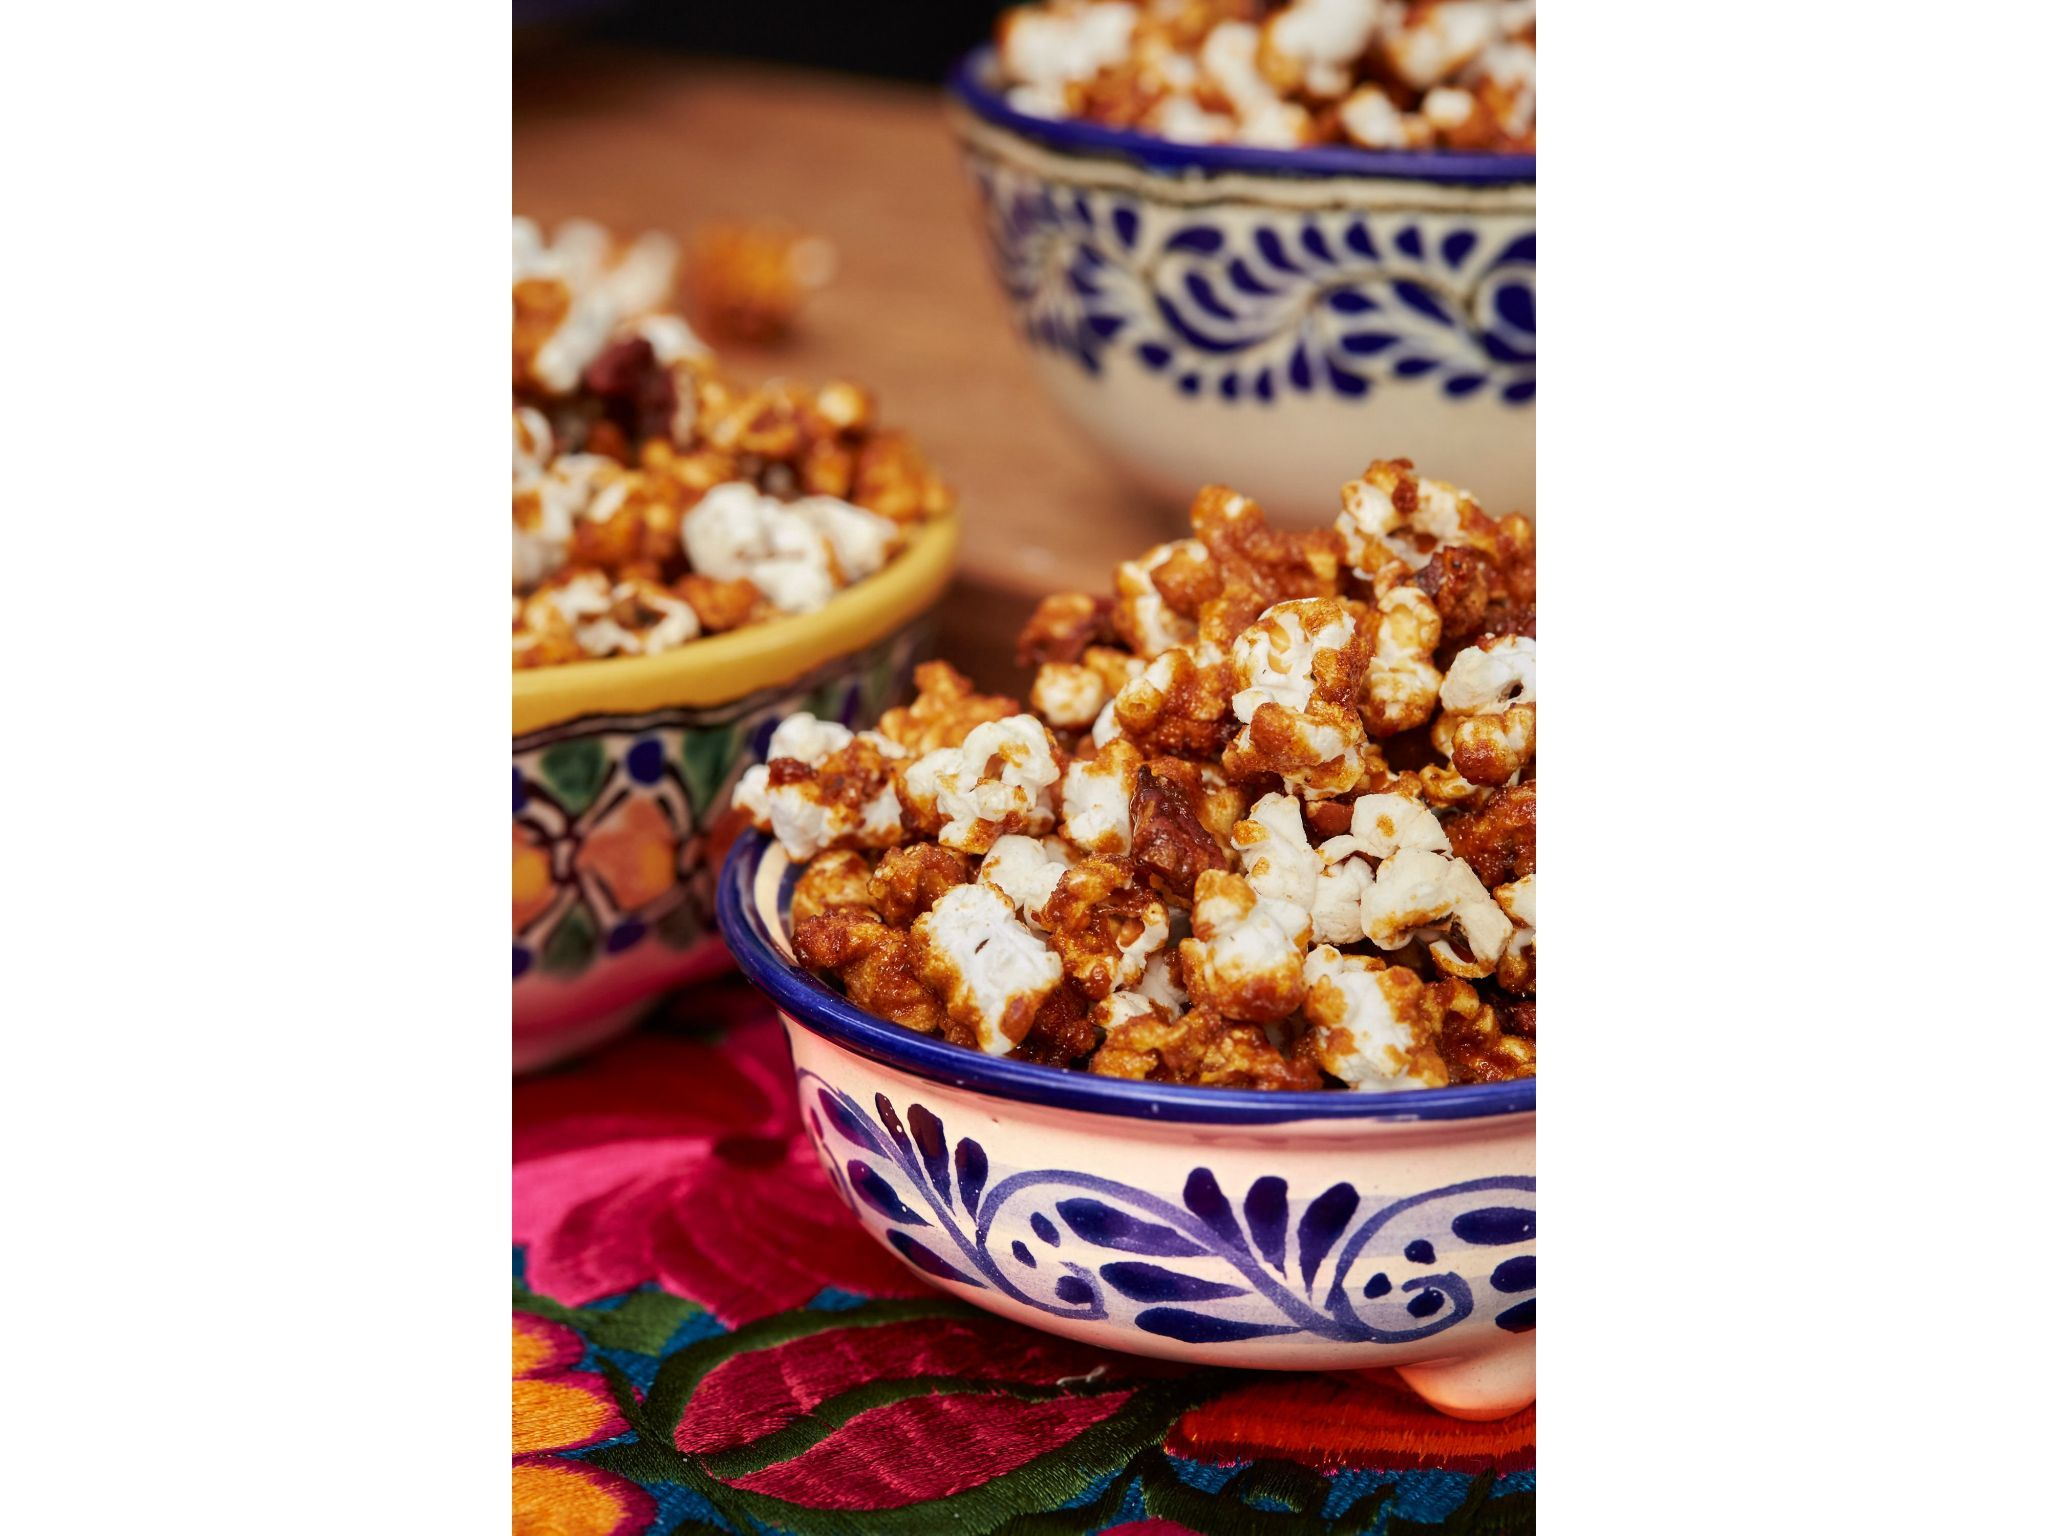 Chipotle-Pecan Candied Popcorn recipe from Marcela Valladolid via Food Network